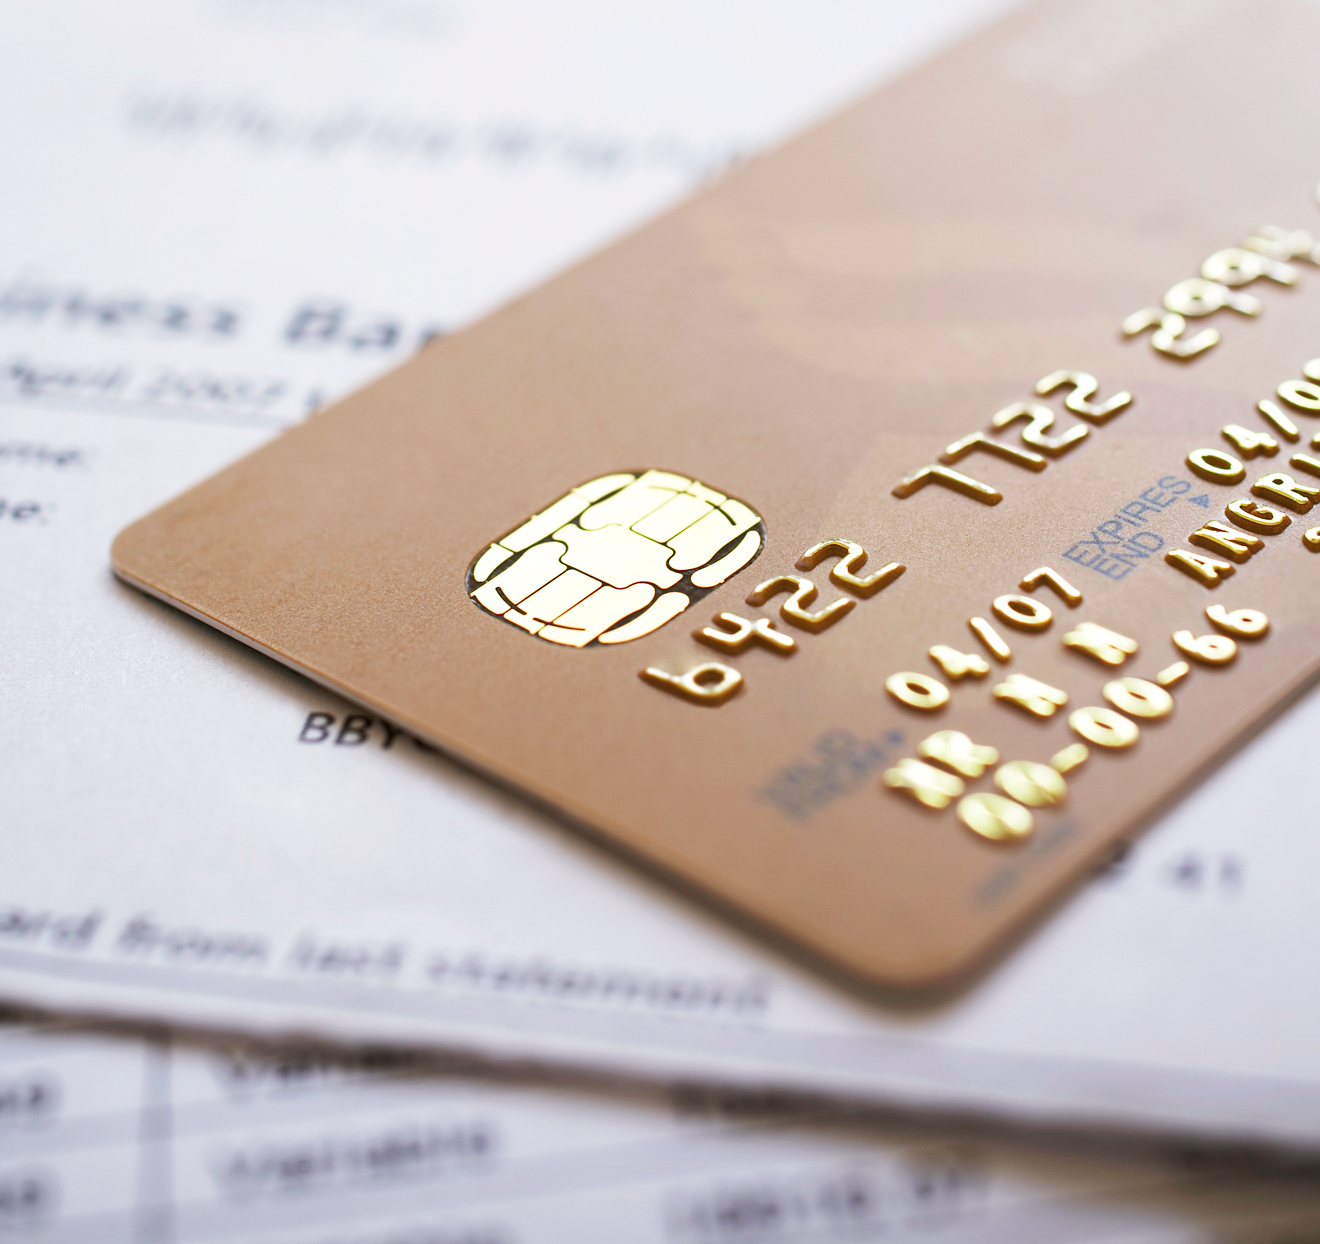 credit card on financial papers